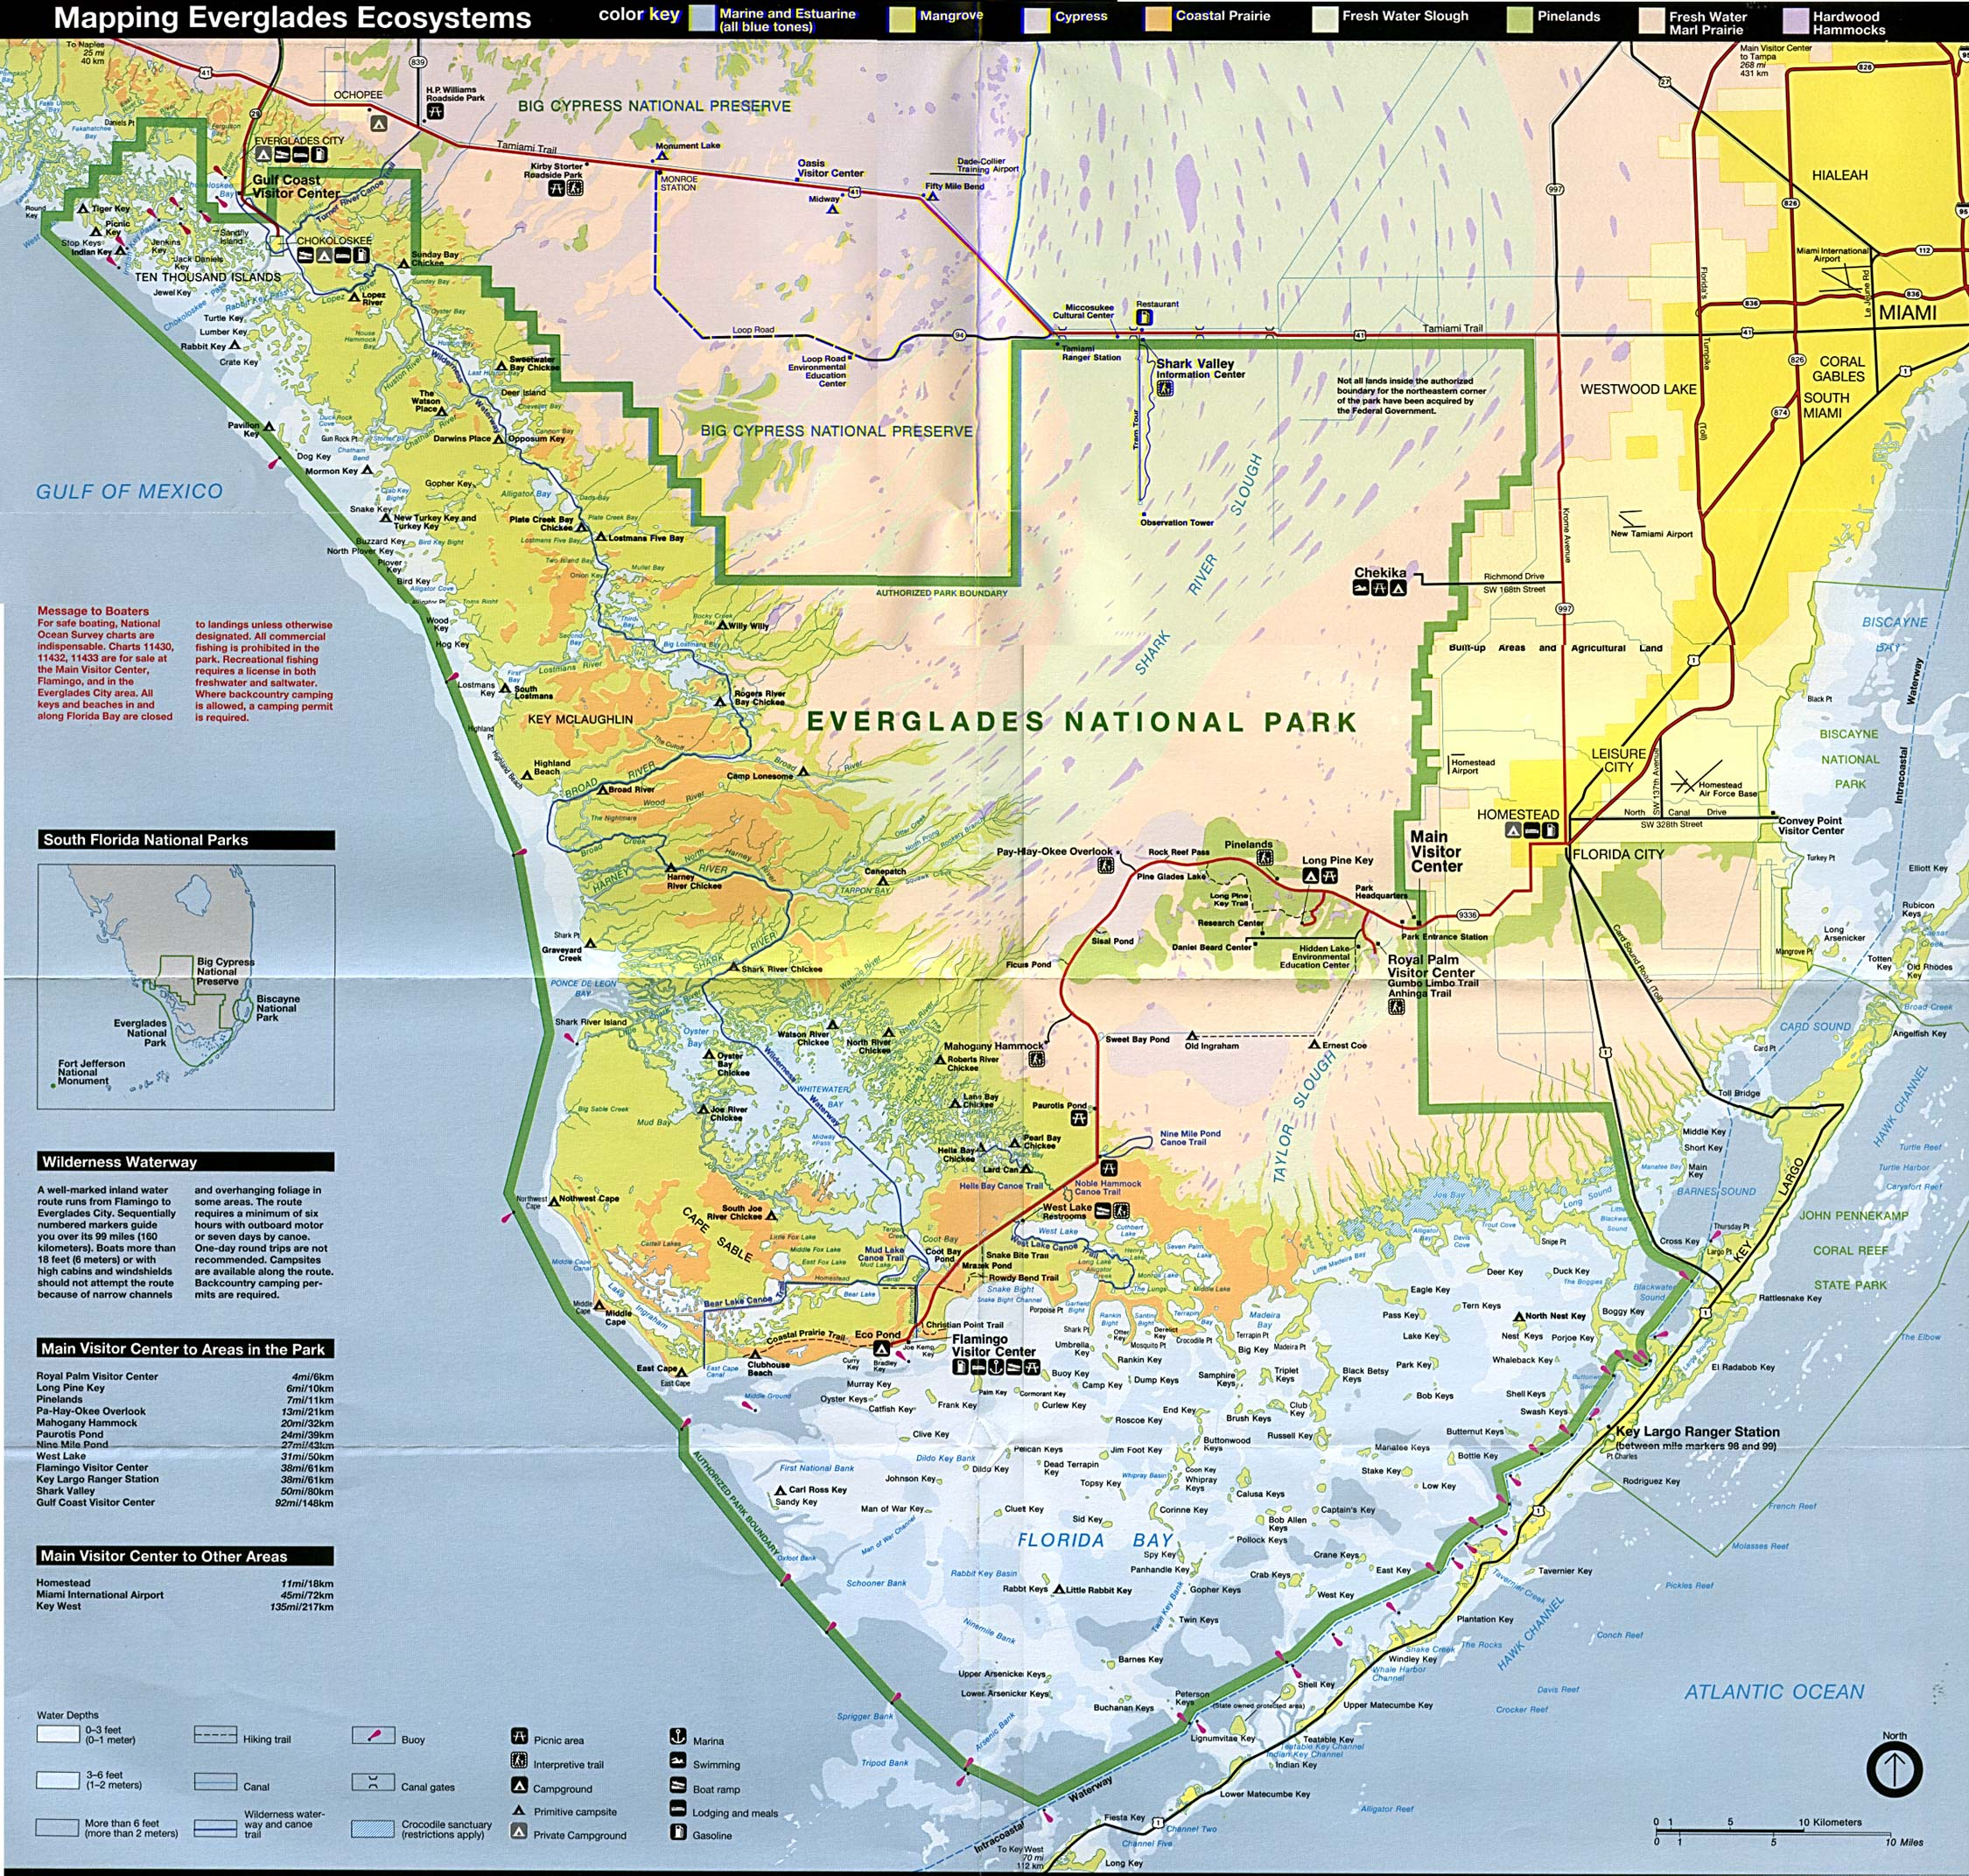 Florida Maps - Perry-Castañeda Map Collection - Ut Library Online - South Florida National Parks Map